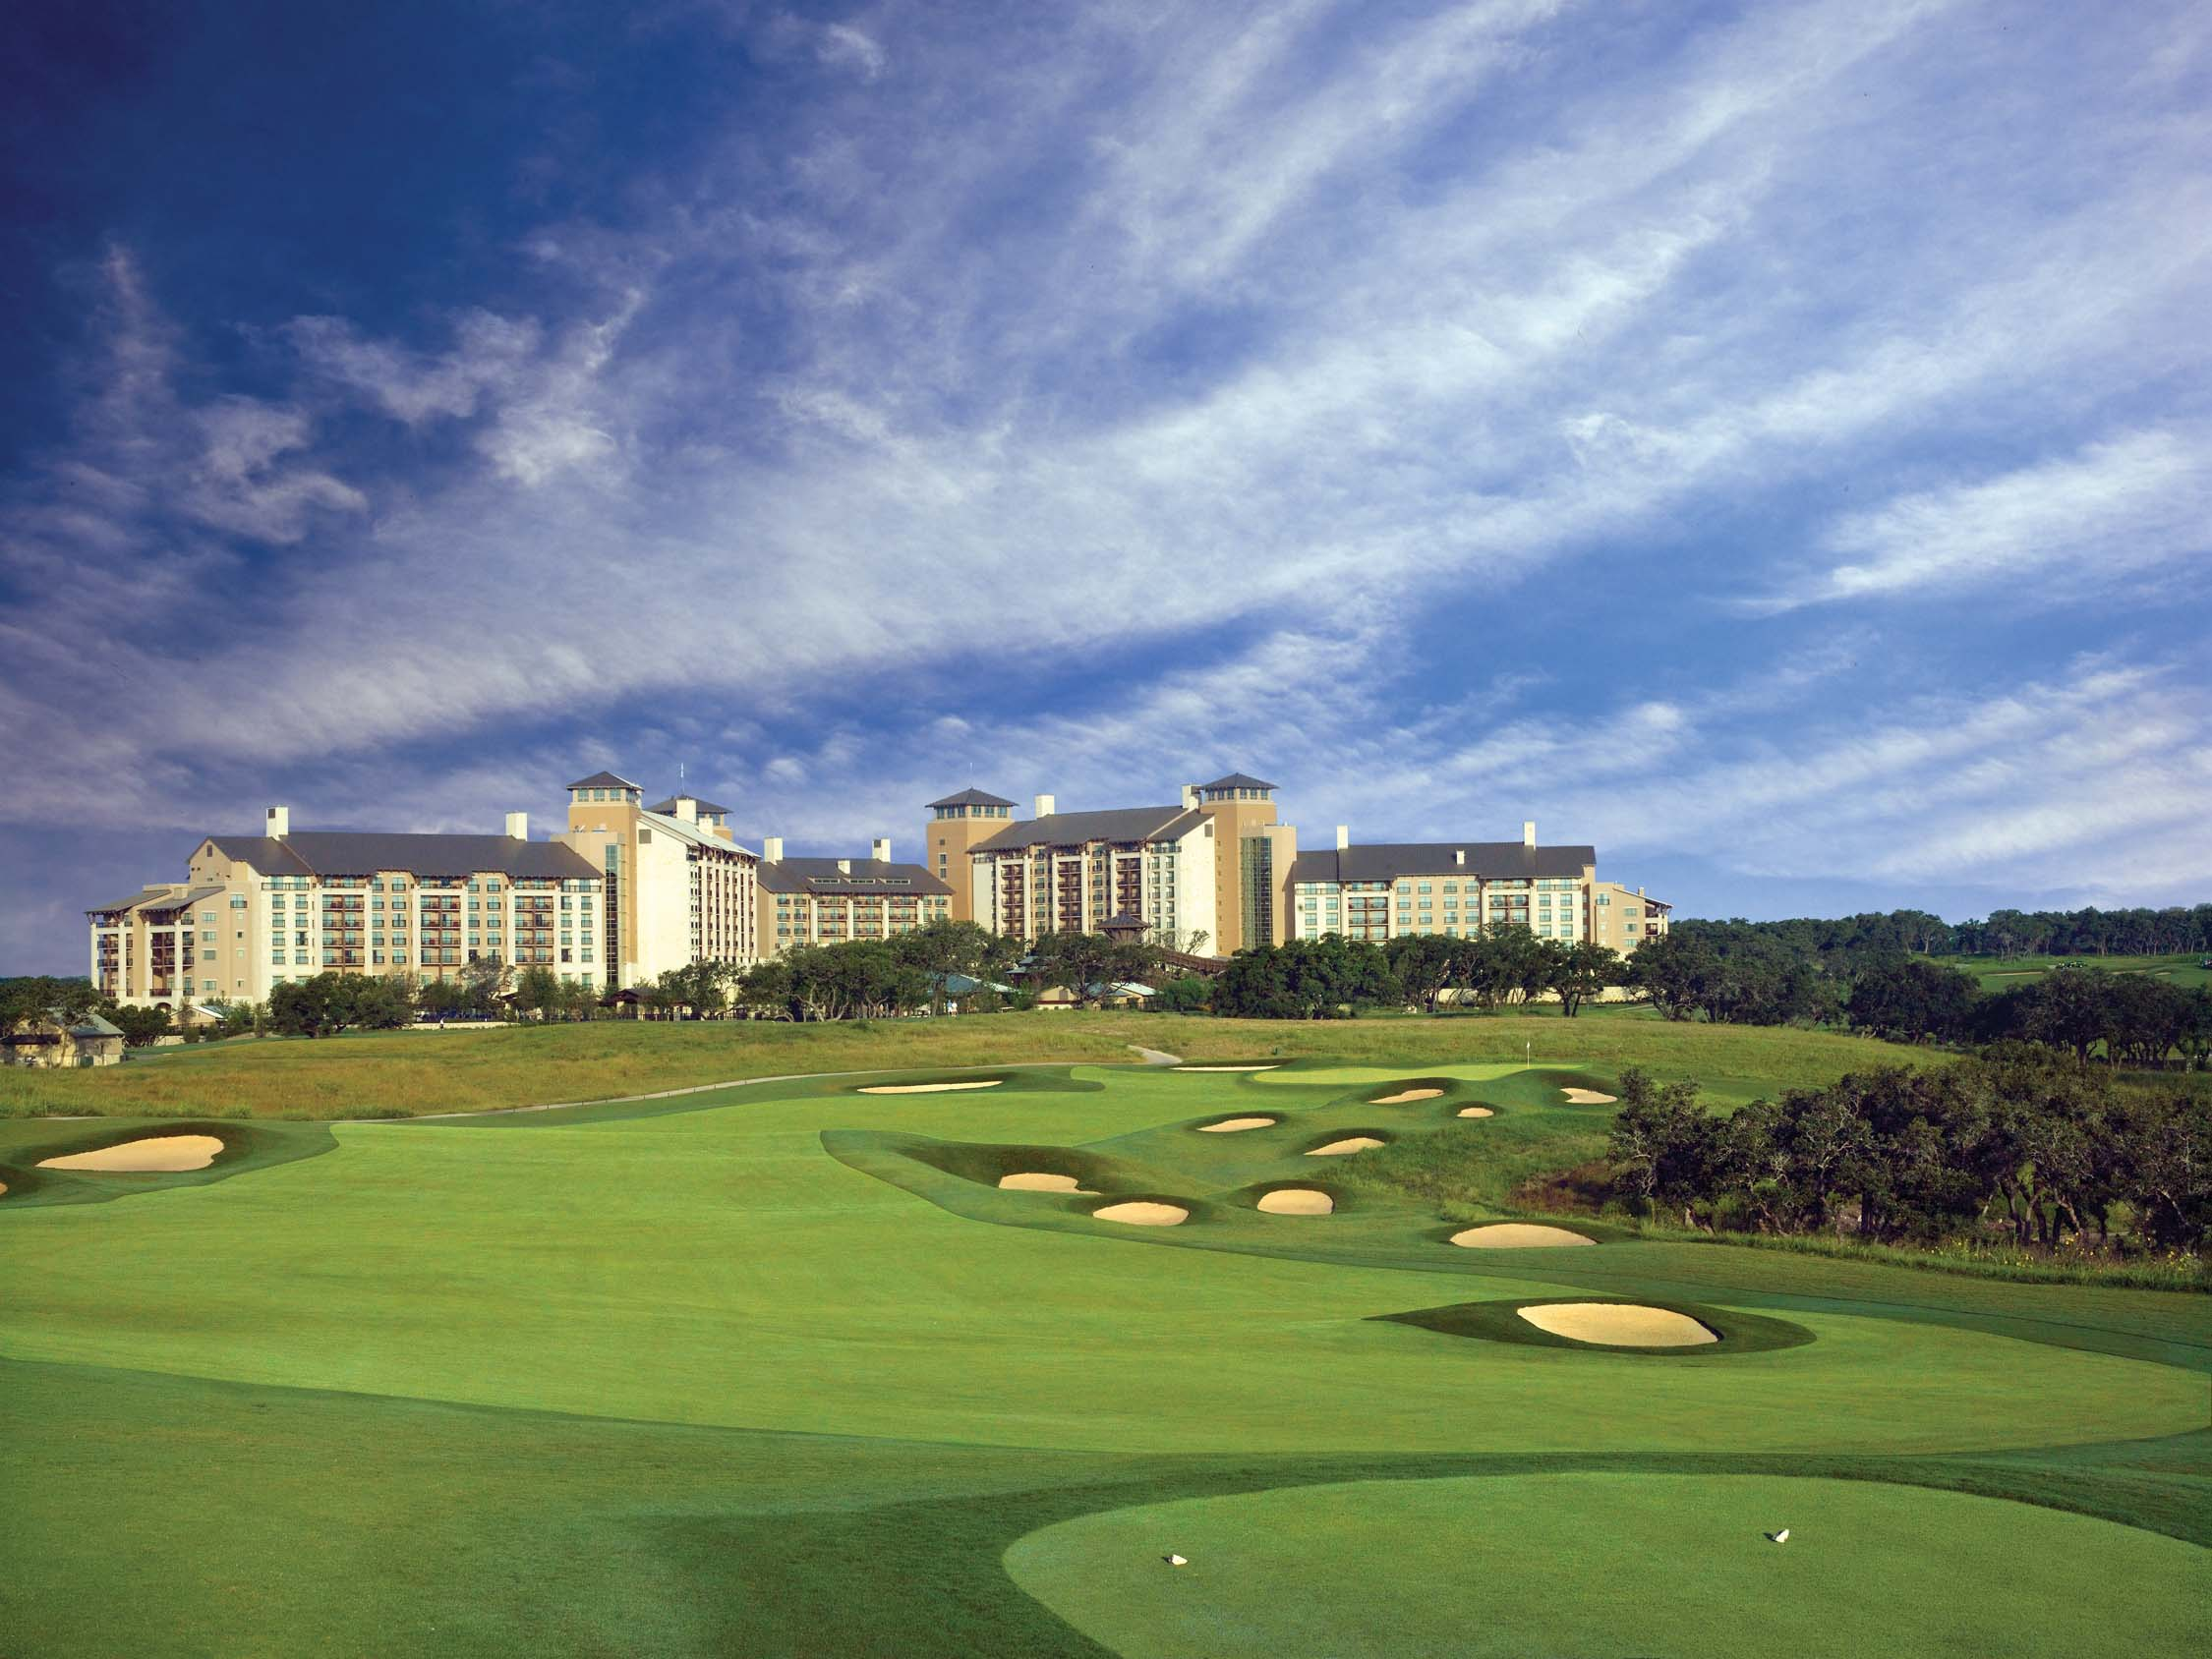 Jw Marriott Hill Country Resort And Spa